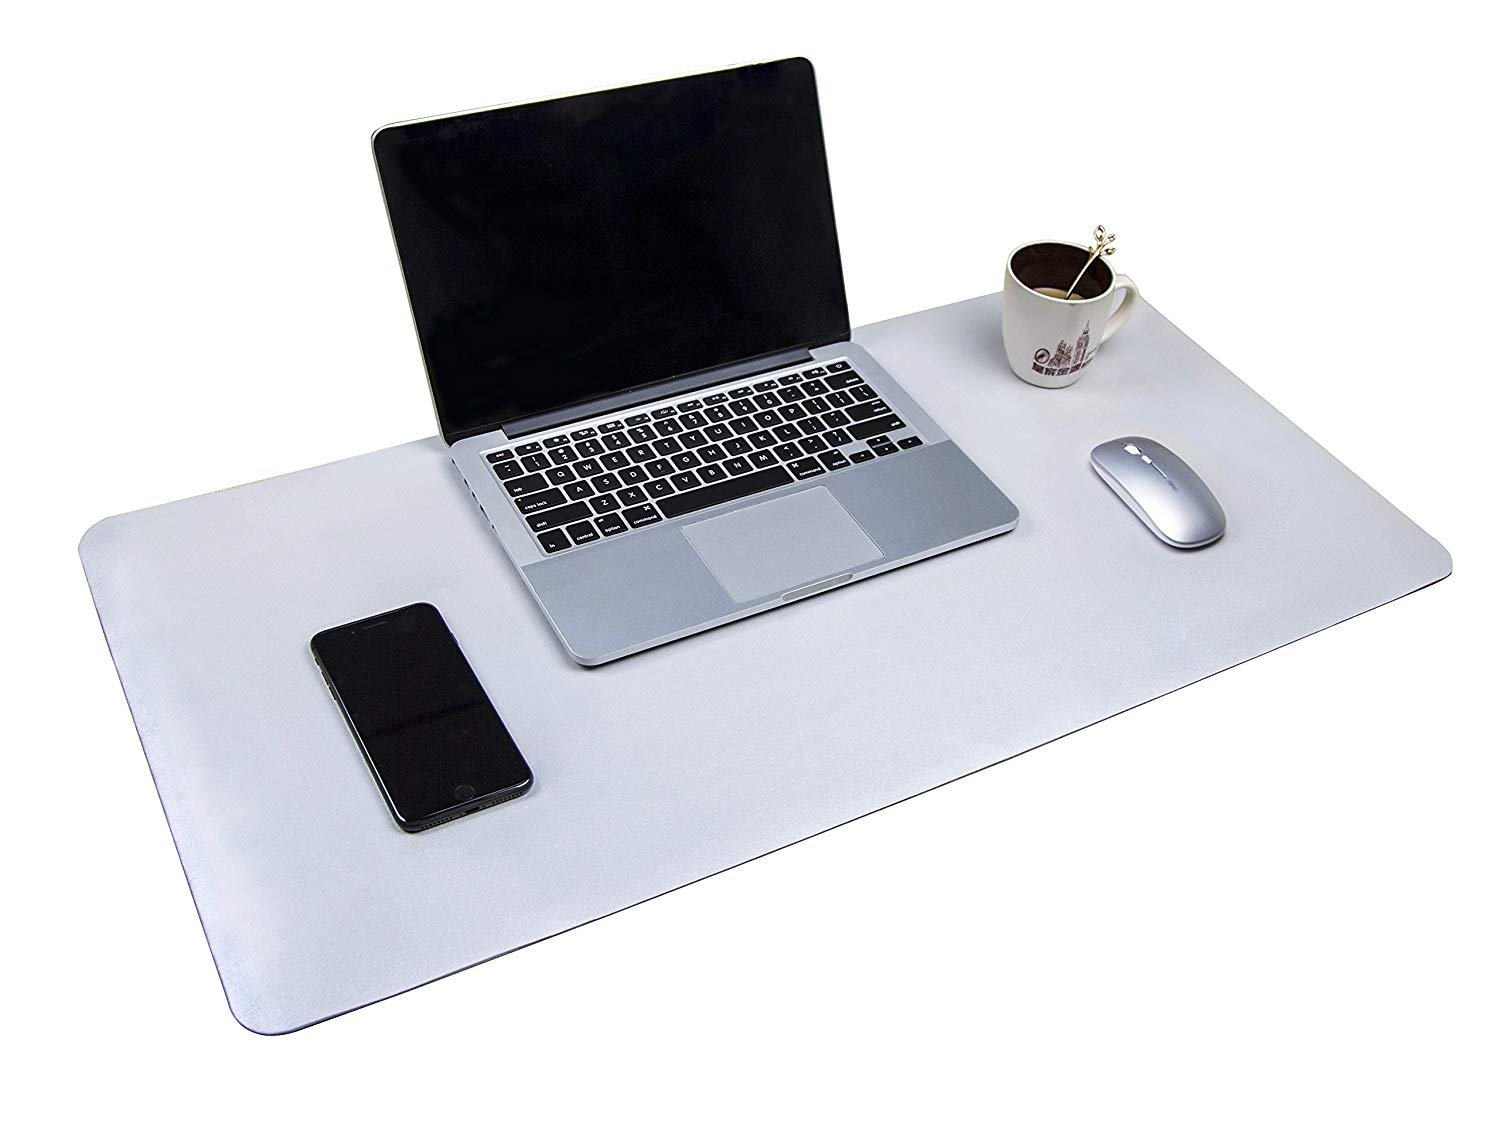 Multifunctional Office Desk Pad, 35.4'' x 17'' YSAGi Ultra Thin Waterproof PU Leather Mouse Pad, Dual Use Desk Writing Mat for Office/Home (35.4'' x 17'', Silver)